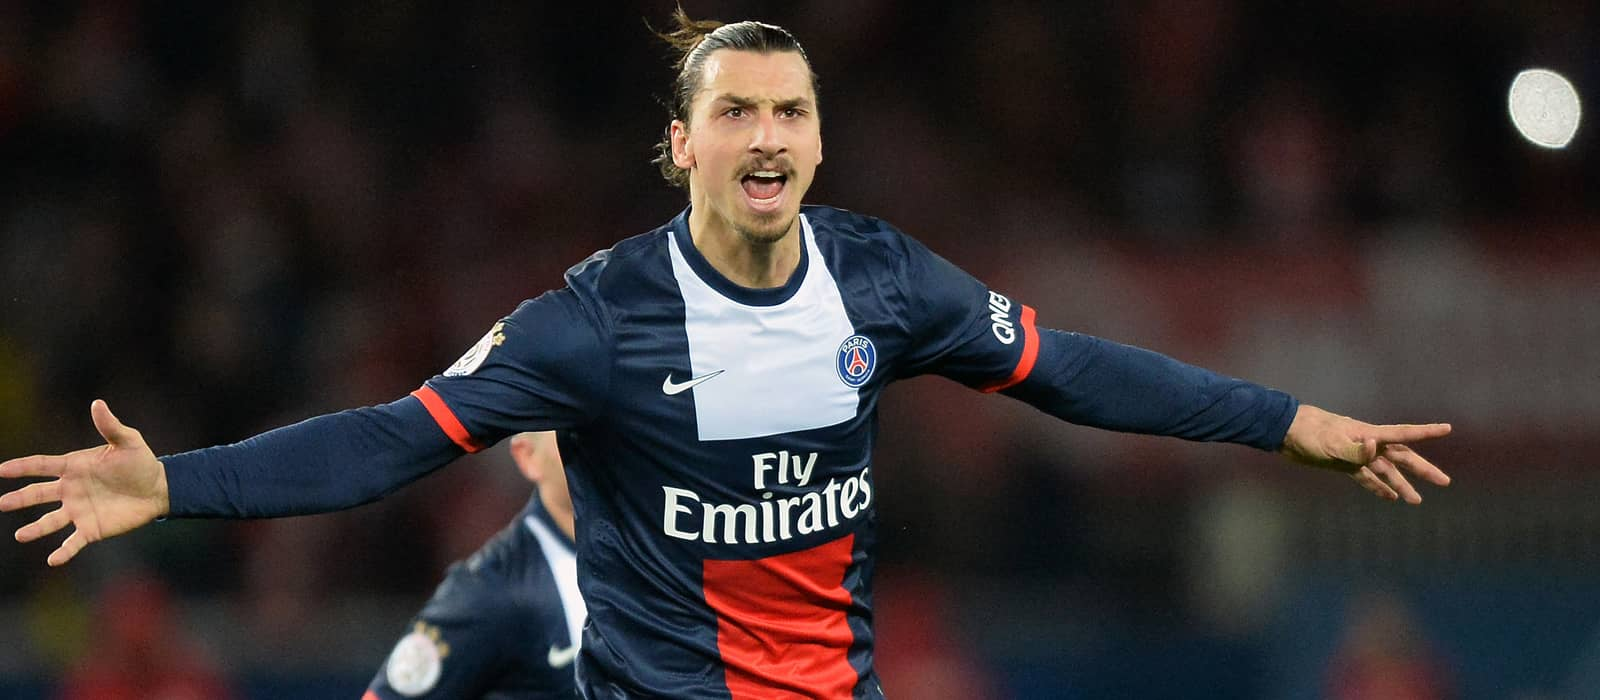 Zlatan Ibrahimovic deal expected to be completed before Euro 2016